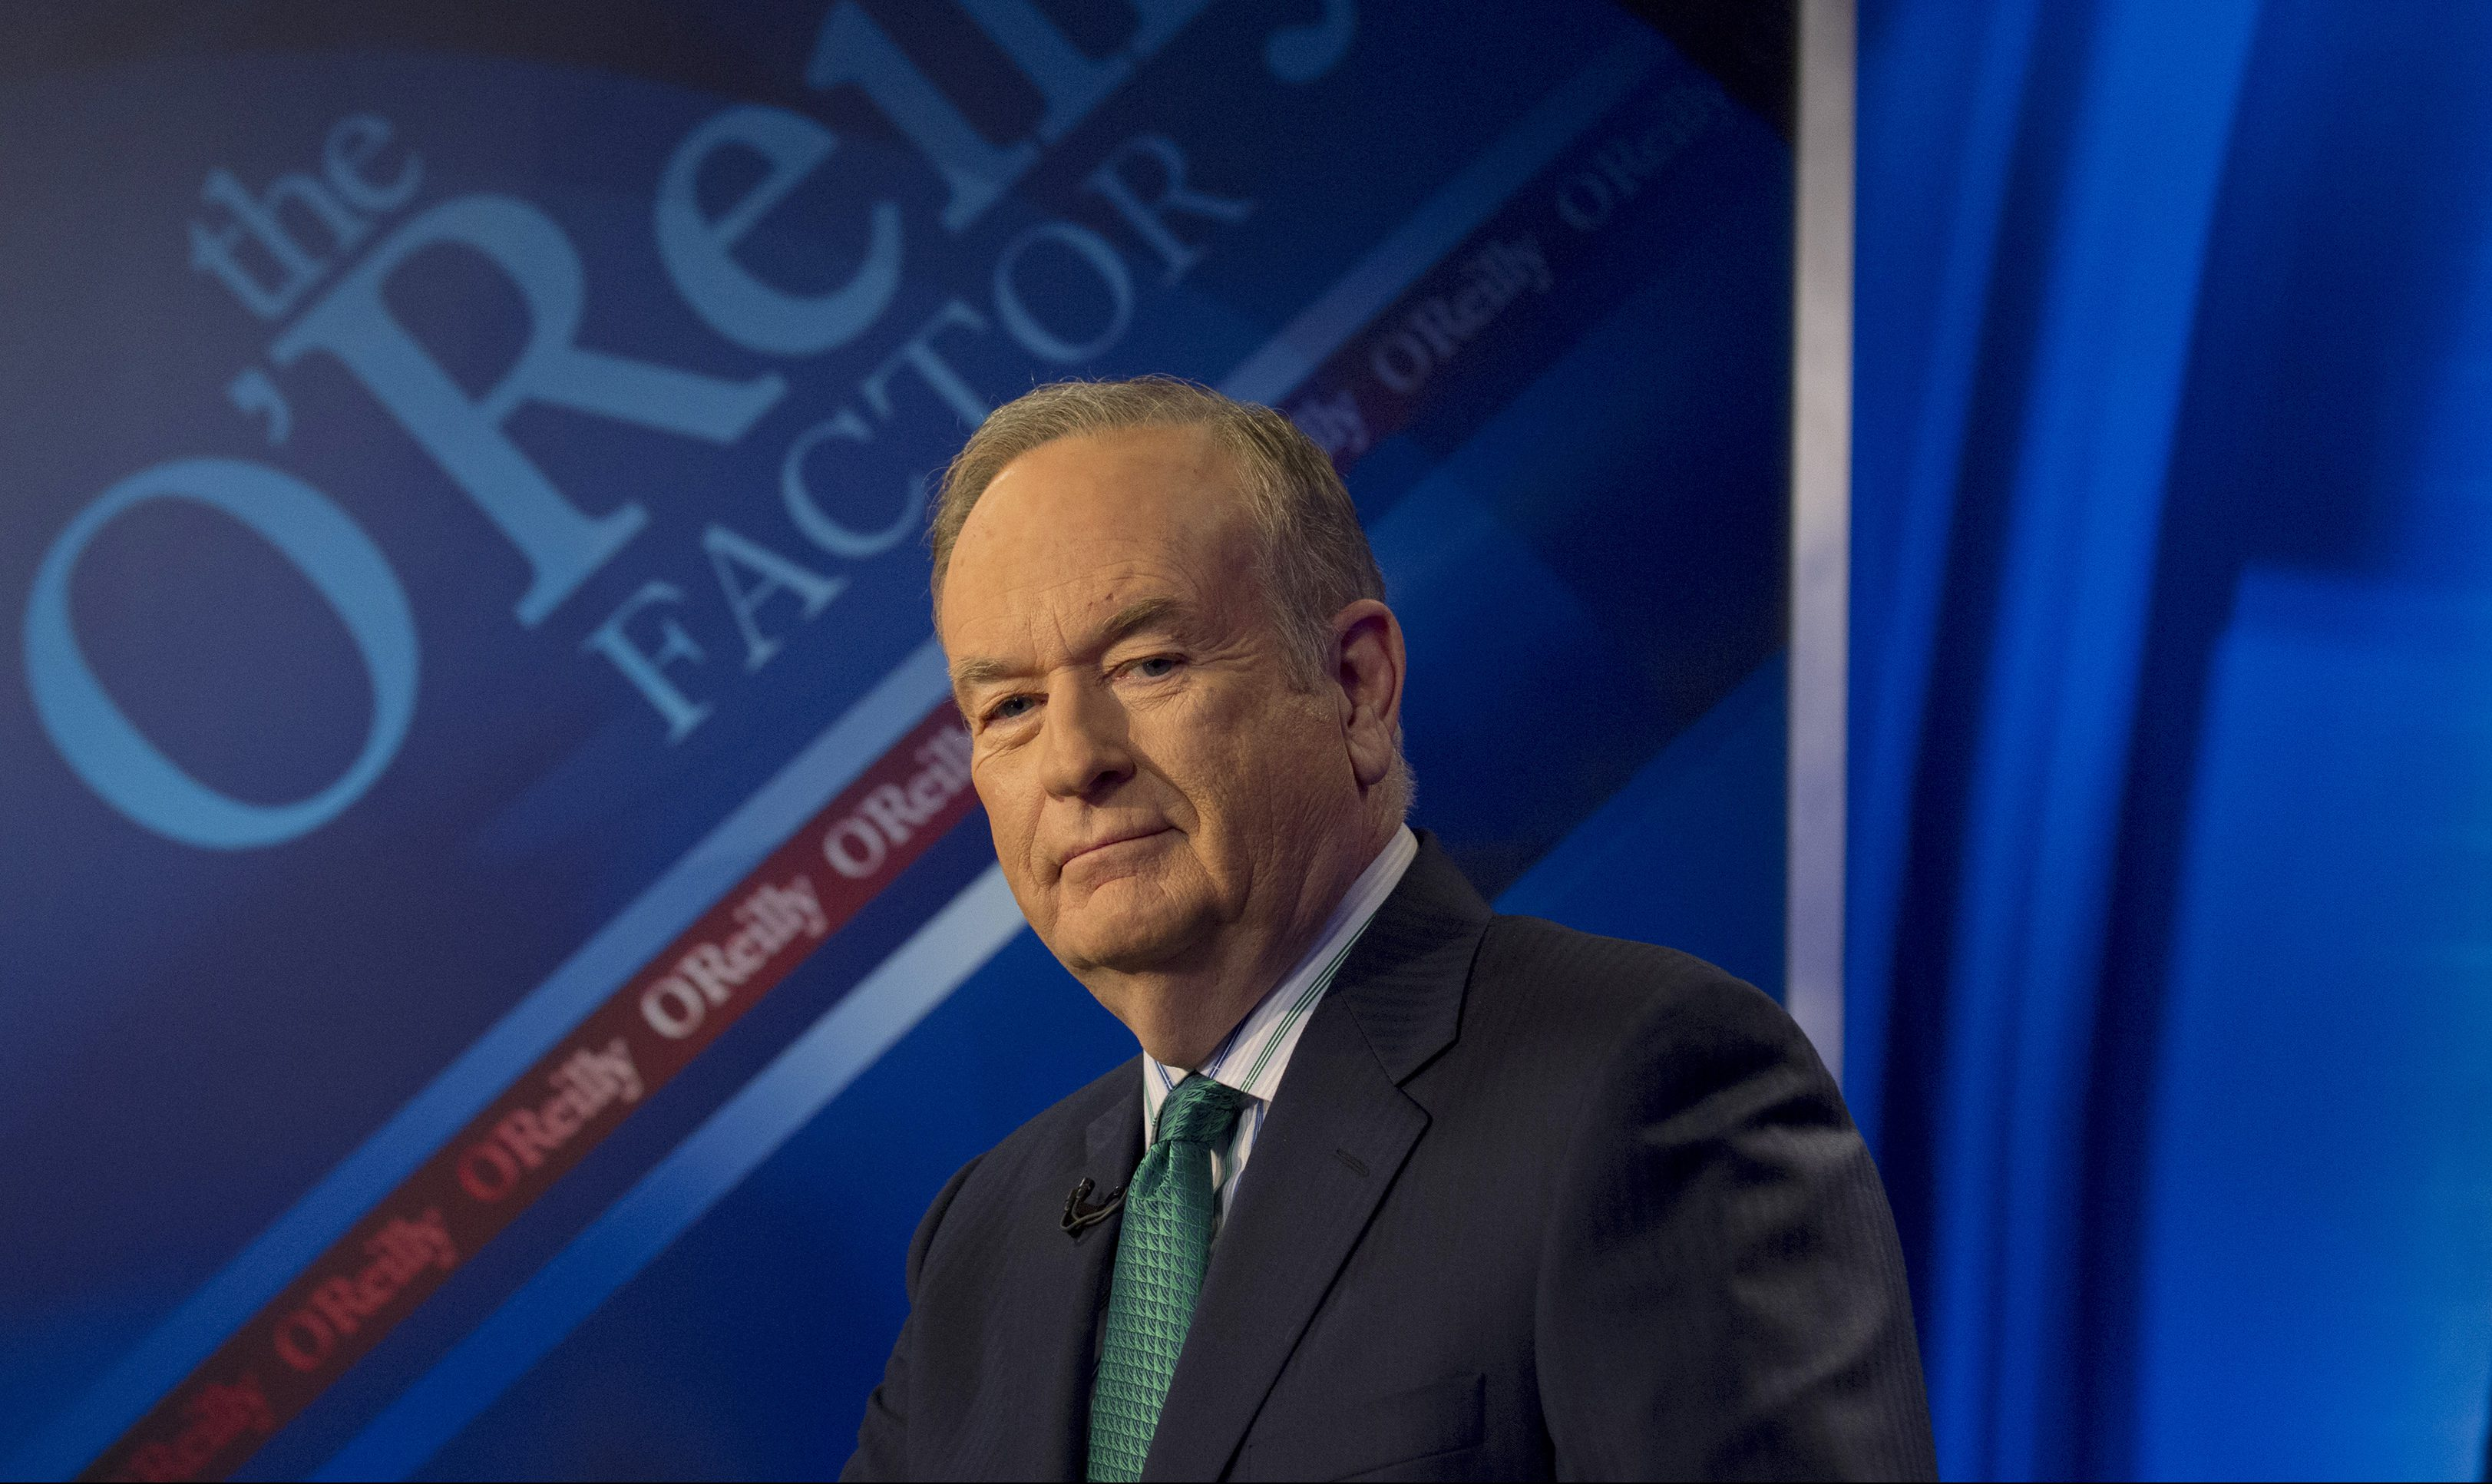 """Fox News Channel host Bill O'Reilly poses on the set of his show """"The O'Reilly Factor"""" in New York March 17, 2015."""